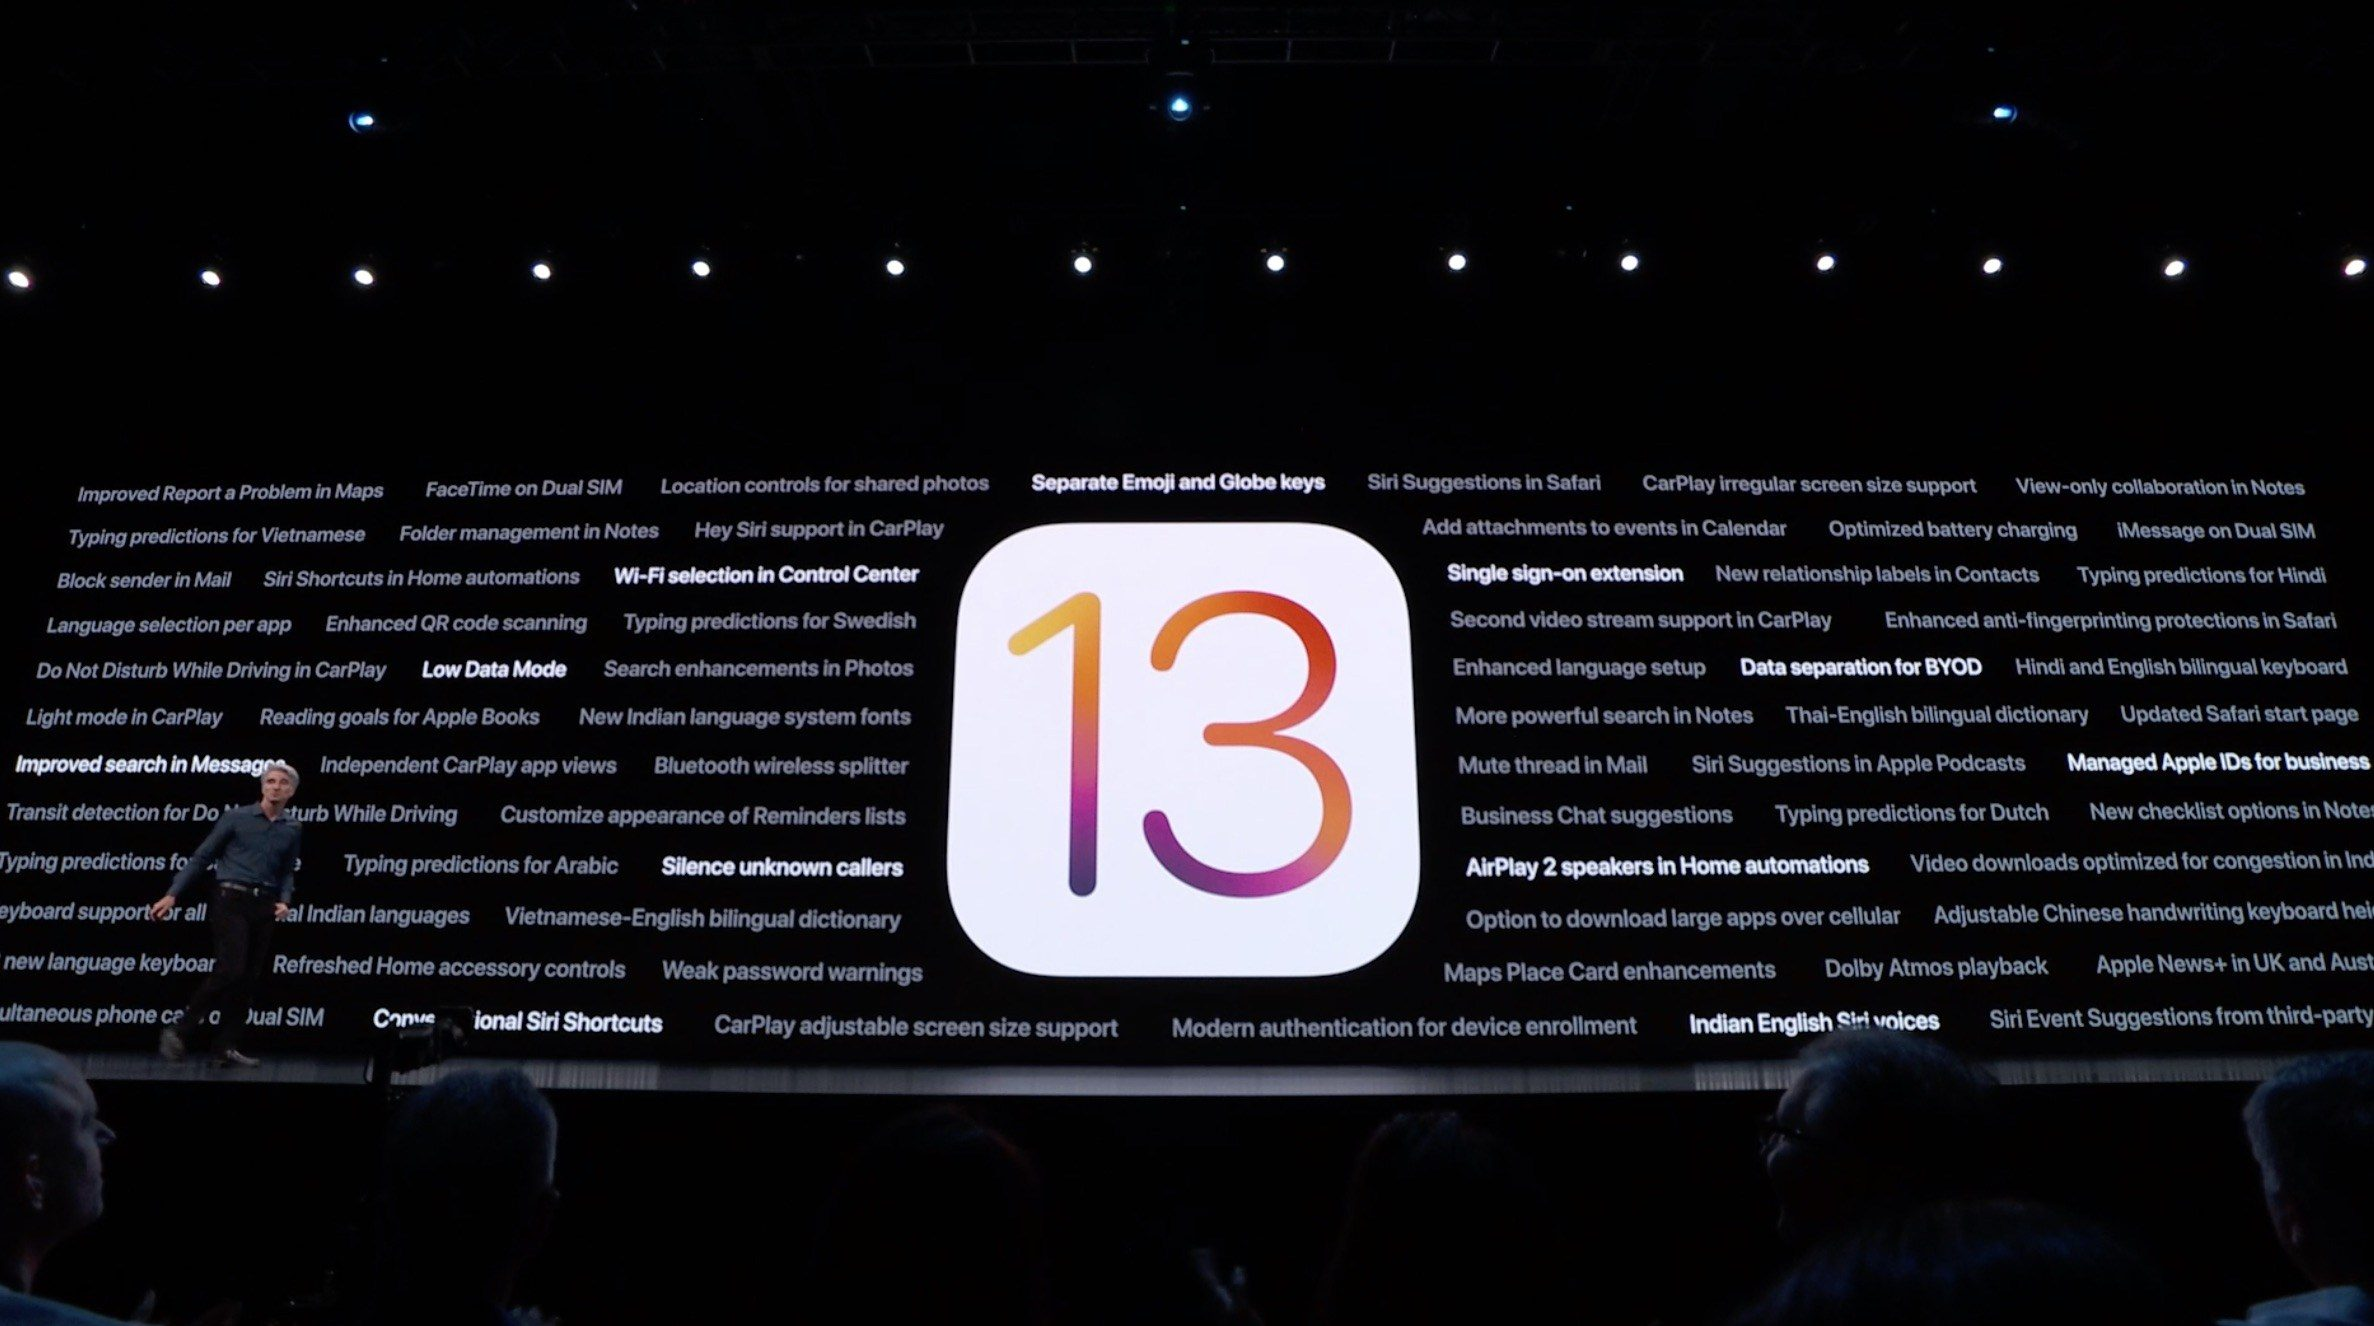 What's new in iOS 13 beta 4?